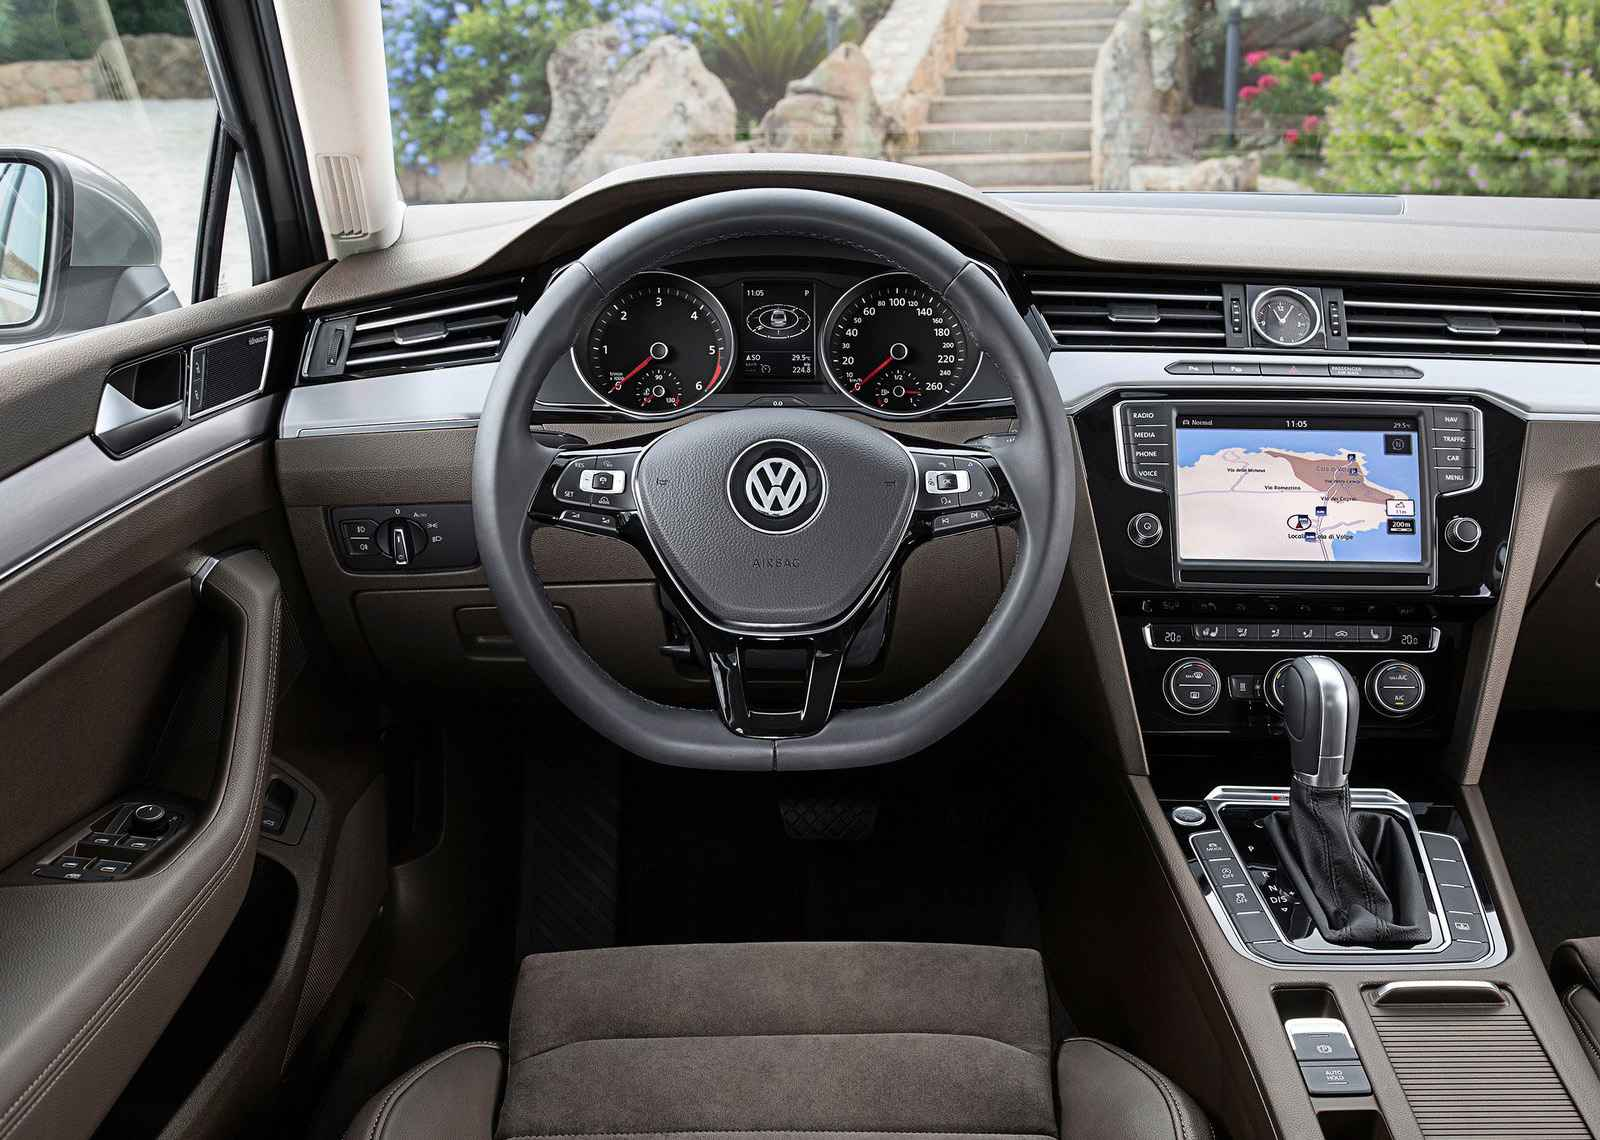 2015 volkswagen passat g ncel fiyatlar uygun ta t. Black Bedroom Furniture Sets. Home Design Ideas